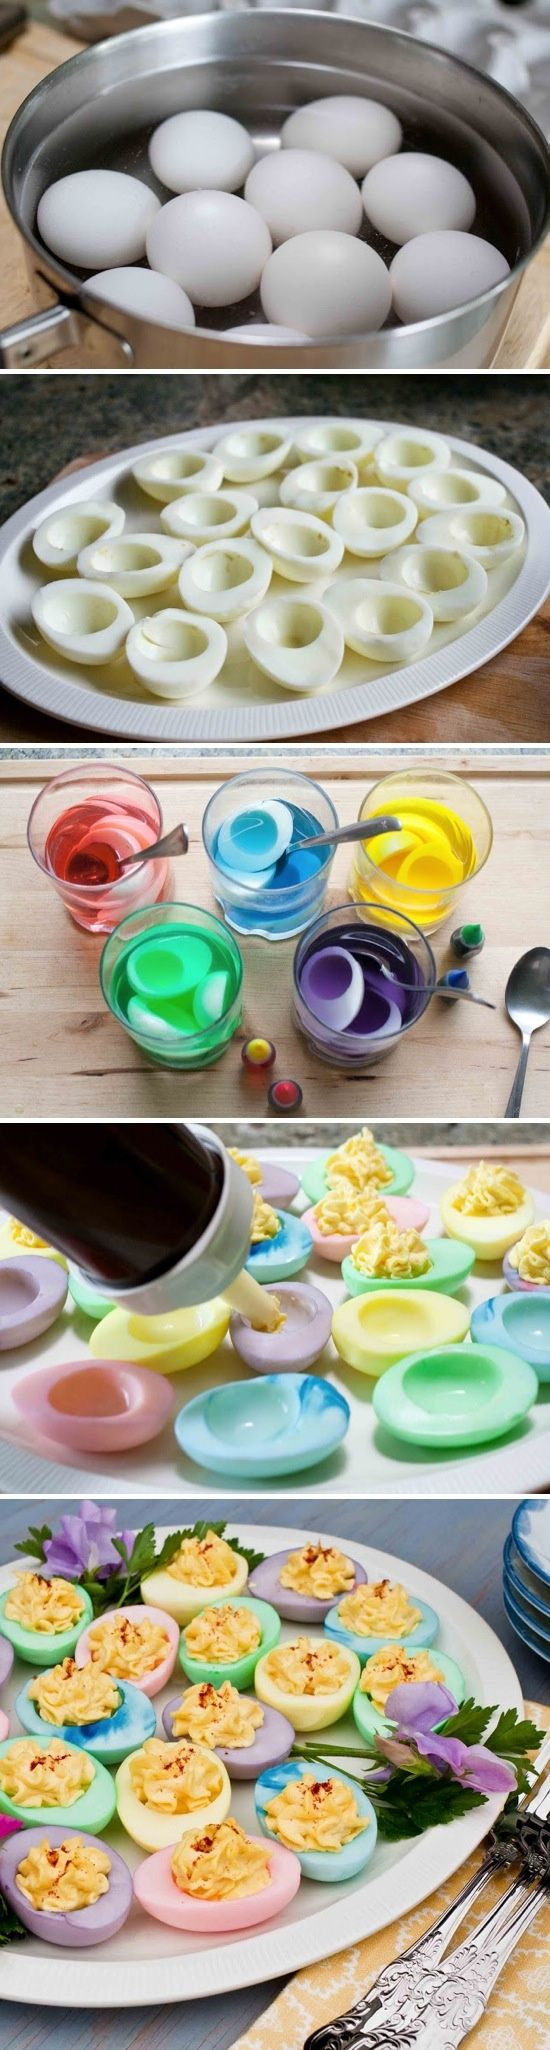 Delicious colorful Easter eggs ****Repinning from my Deviled Eggs Board -just in time for Easter!